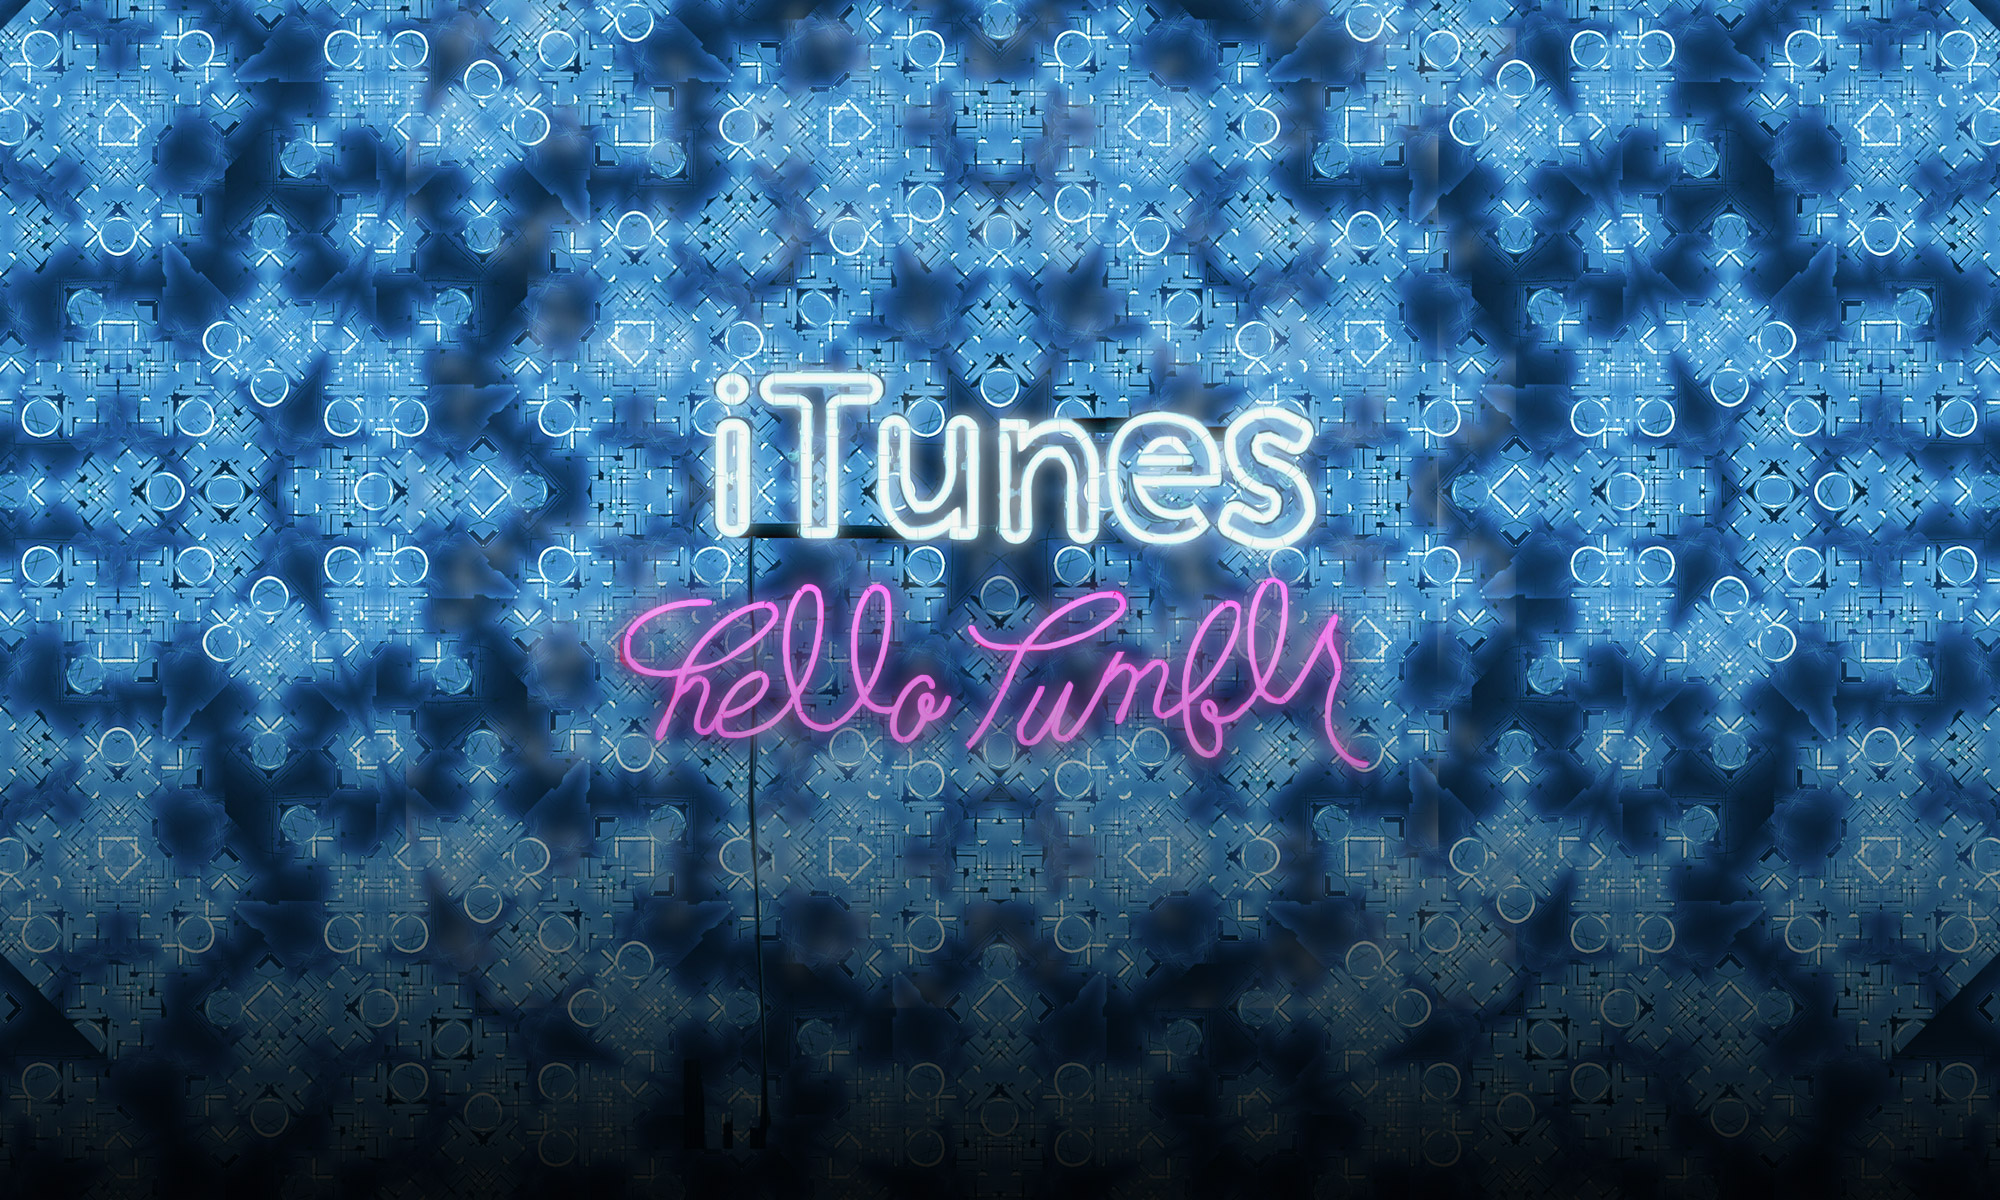 iTunes Tumblr blog teaser 001